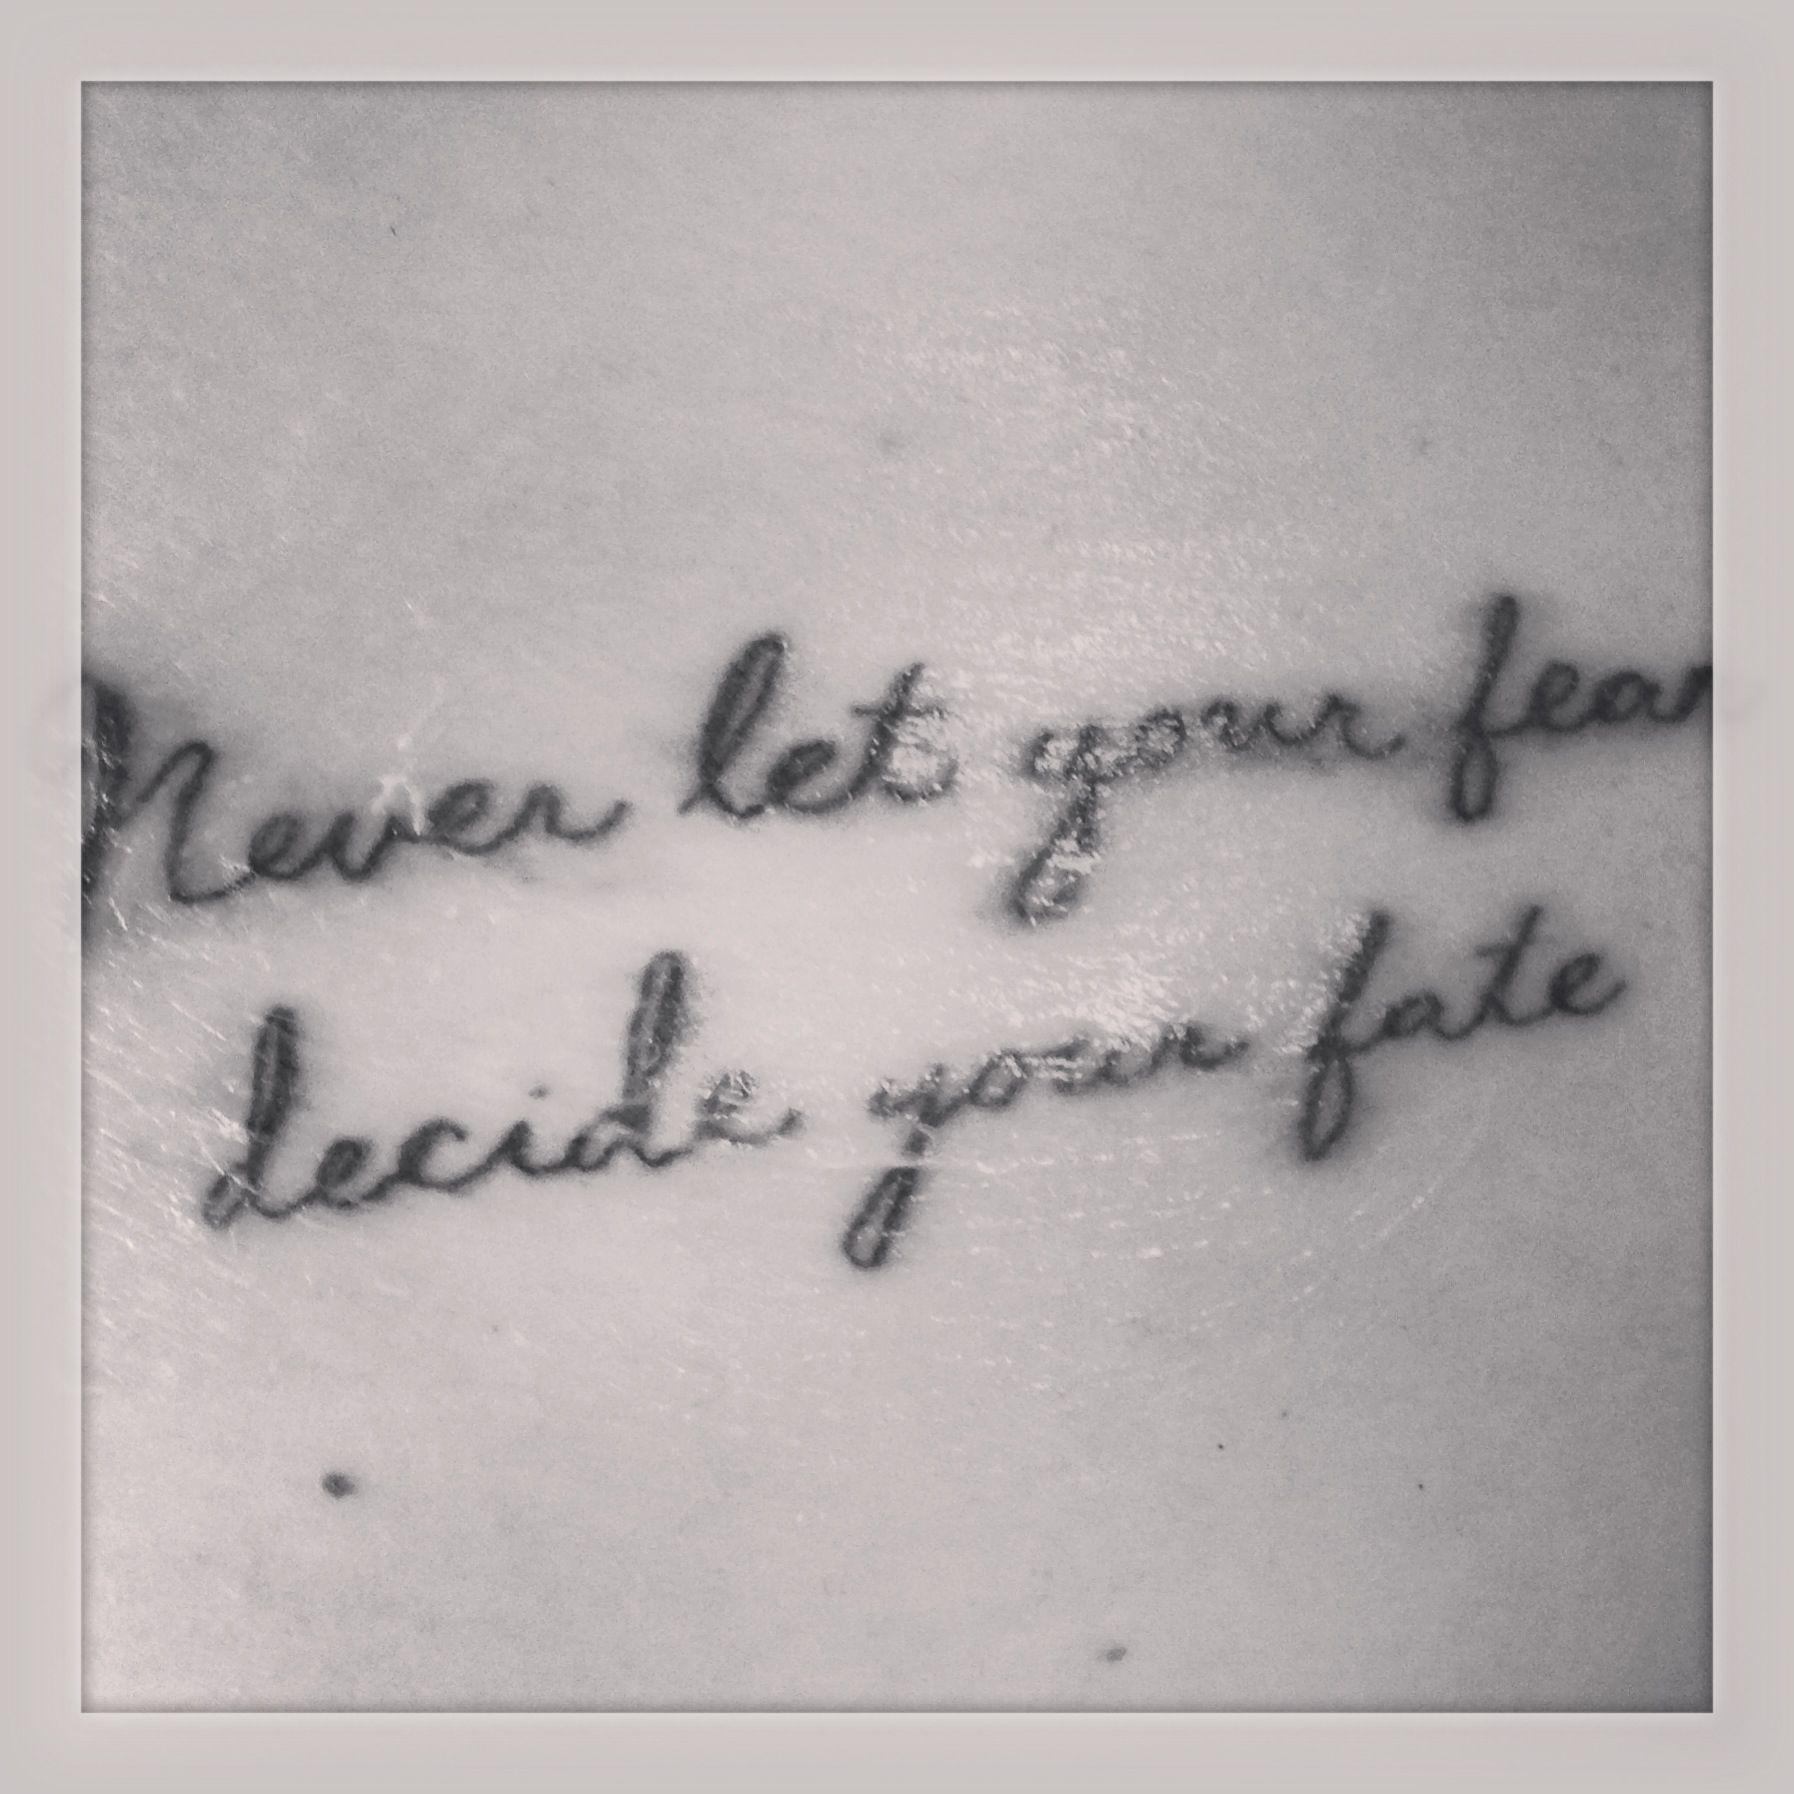 One of my tattoo..never let your fear decide your fate